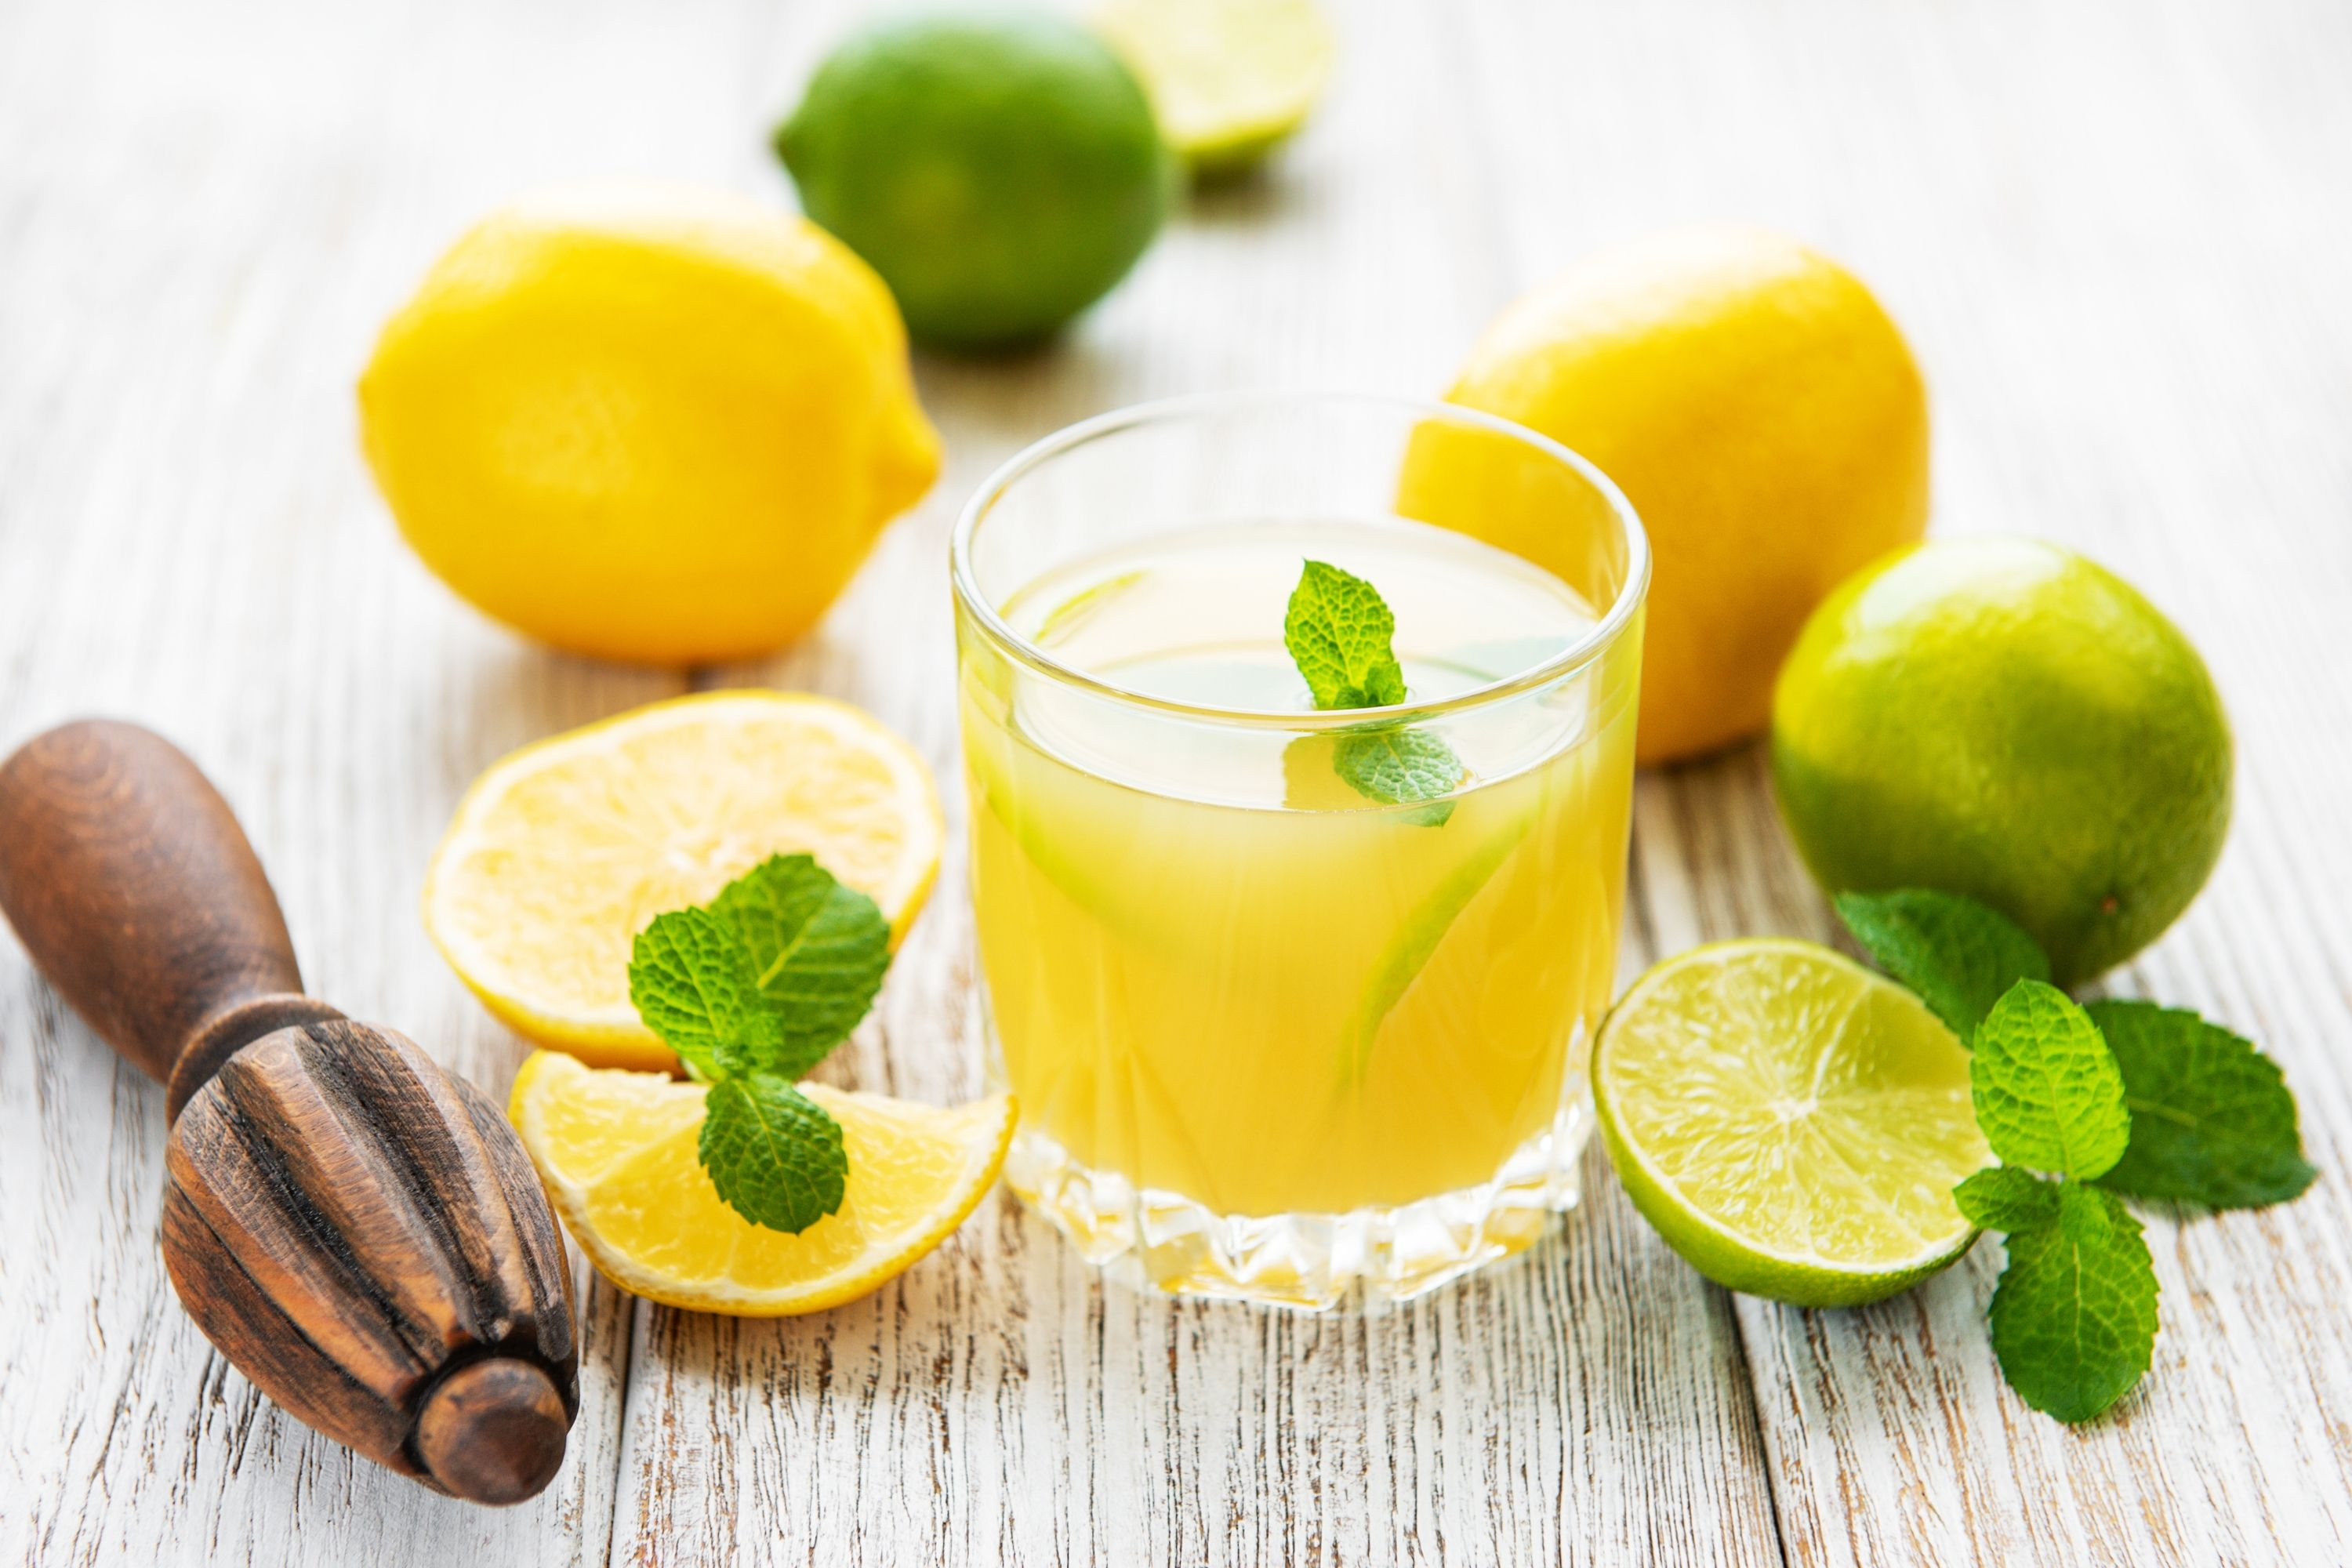 How Much Juice Does One Lemon Make